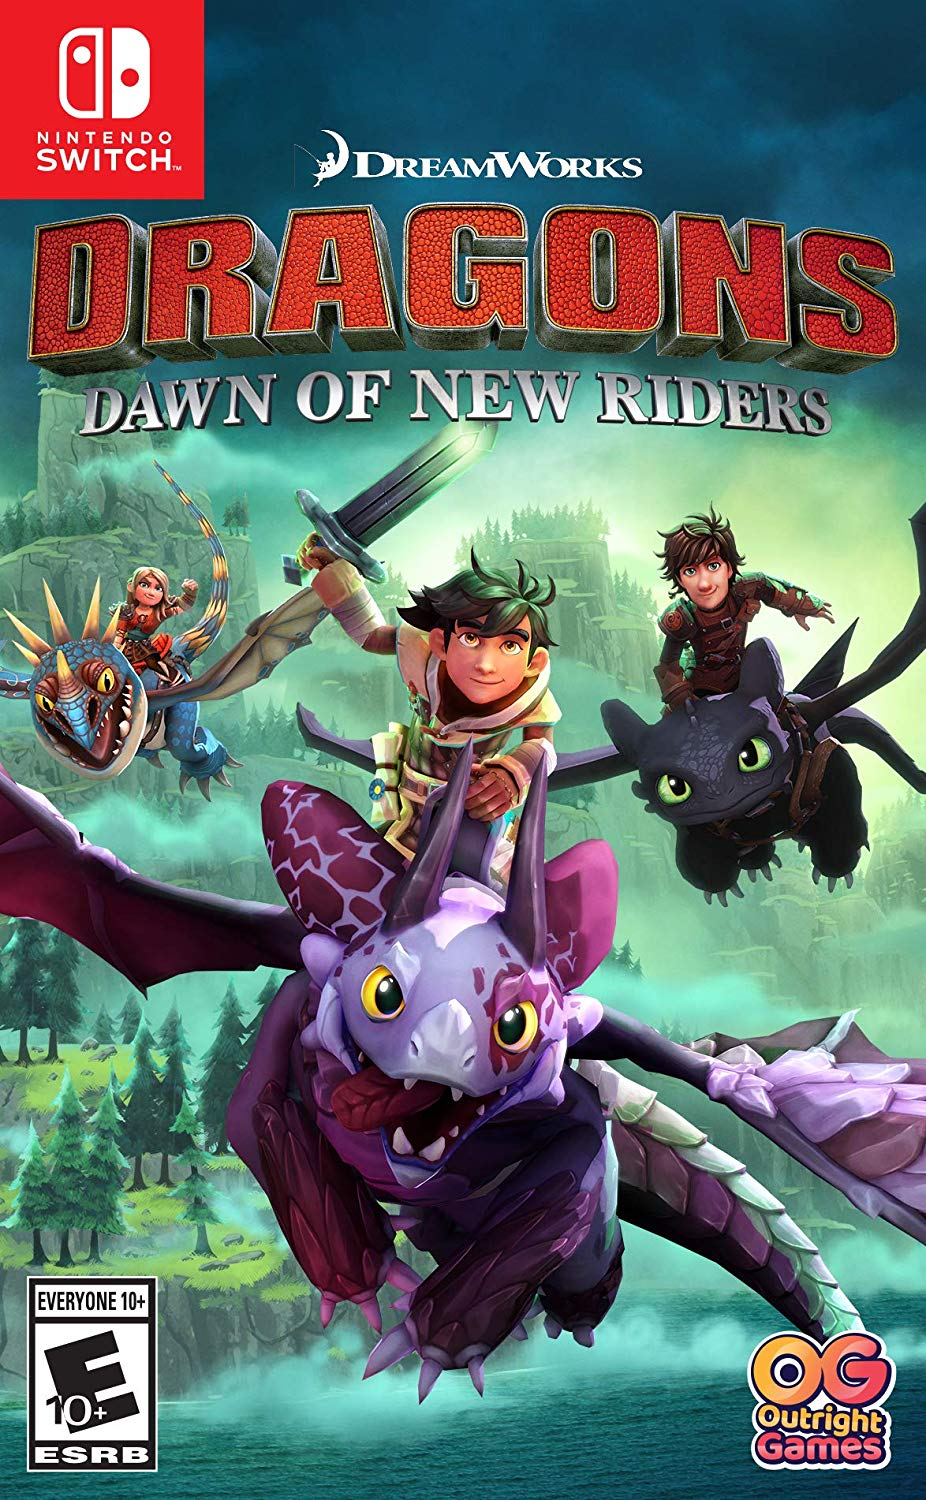 DreamWorks Dragons Dawn of New Riders - Nintendo Switch